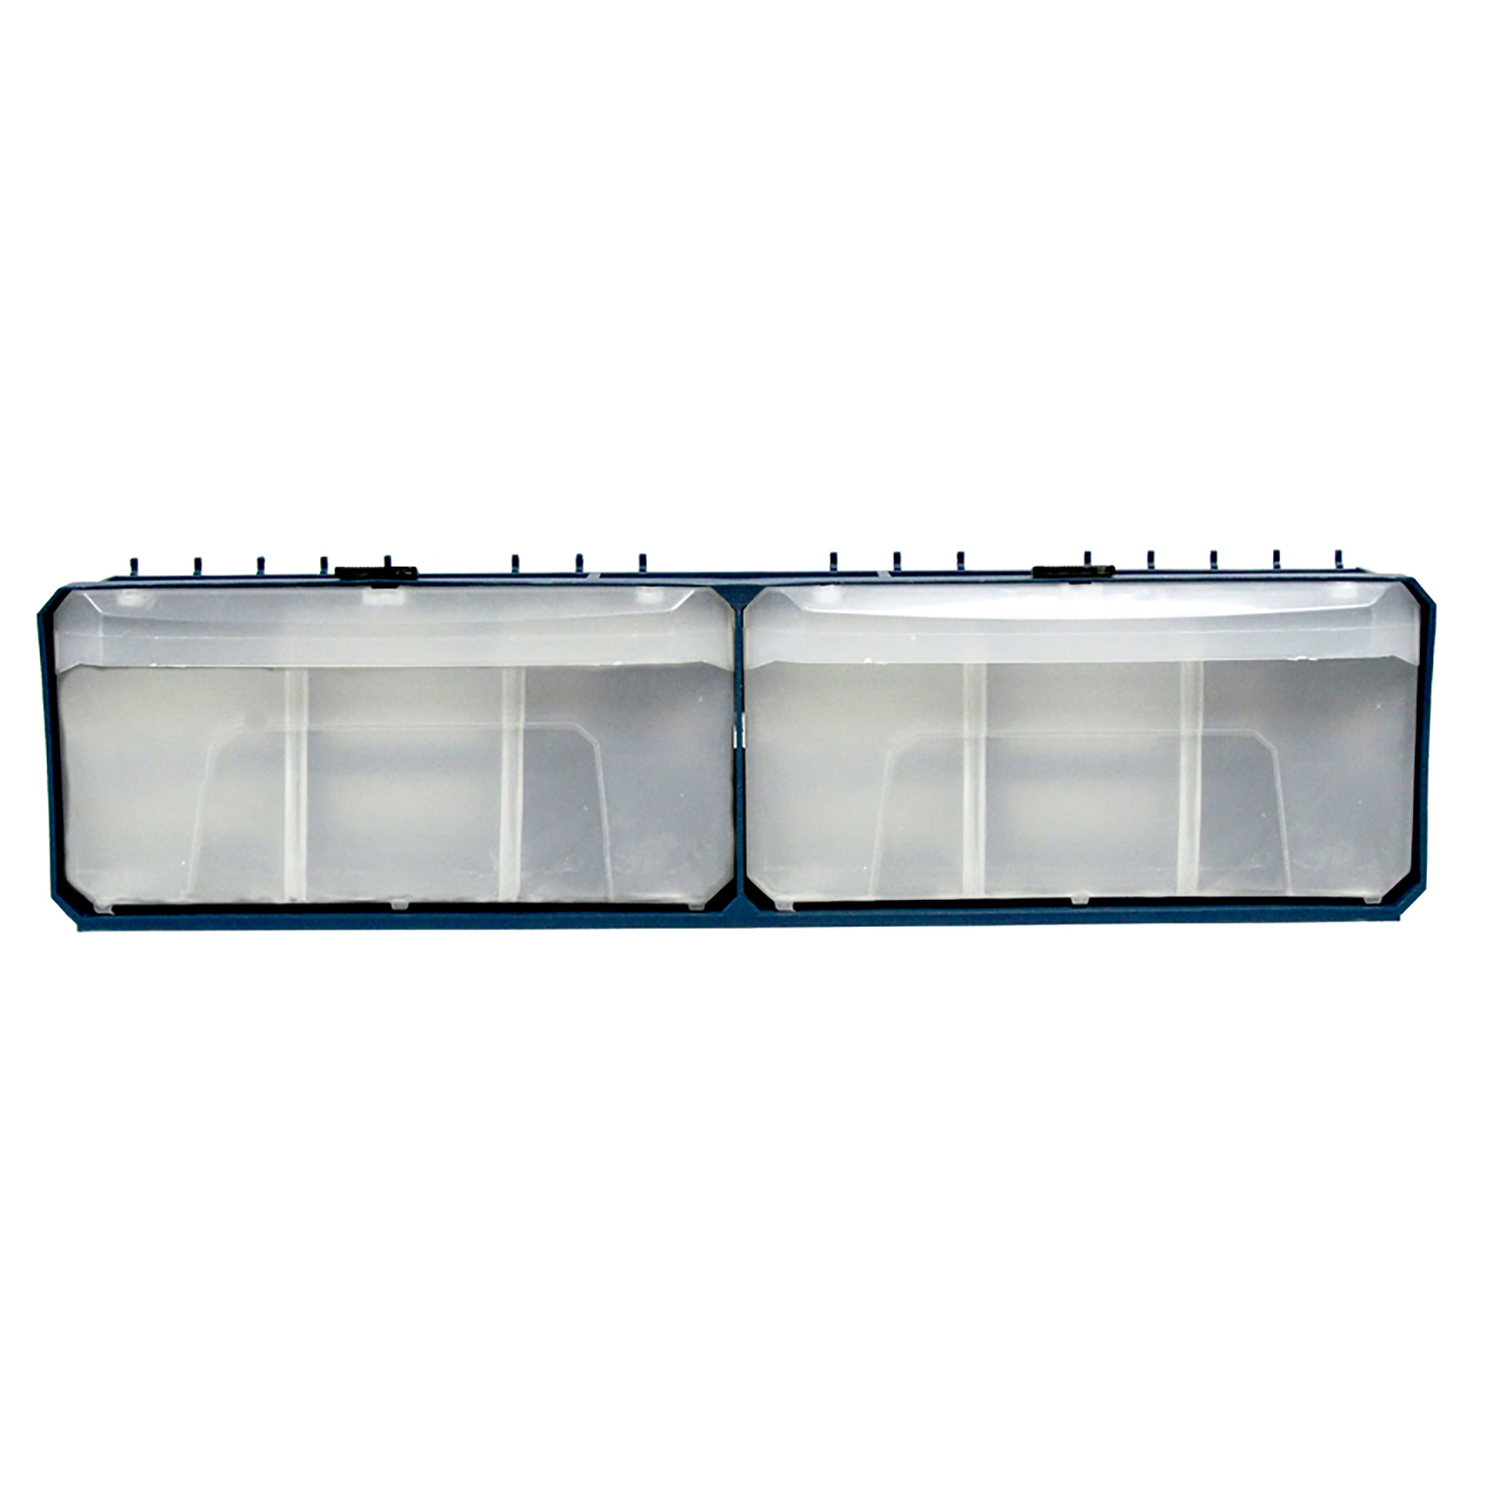 Crawford  Blue  Polypropylene  4 in. Multi-Bin Parts Organizer  1 pk